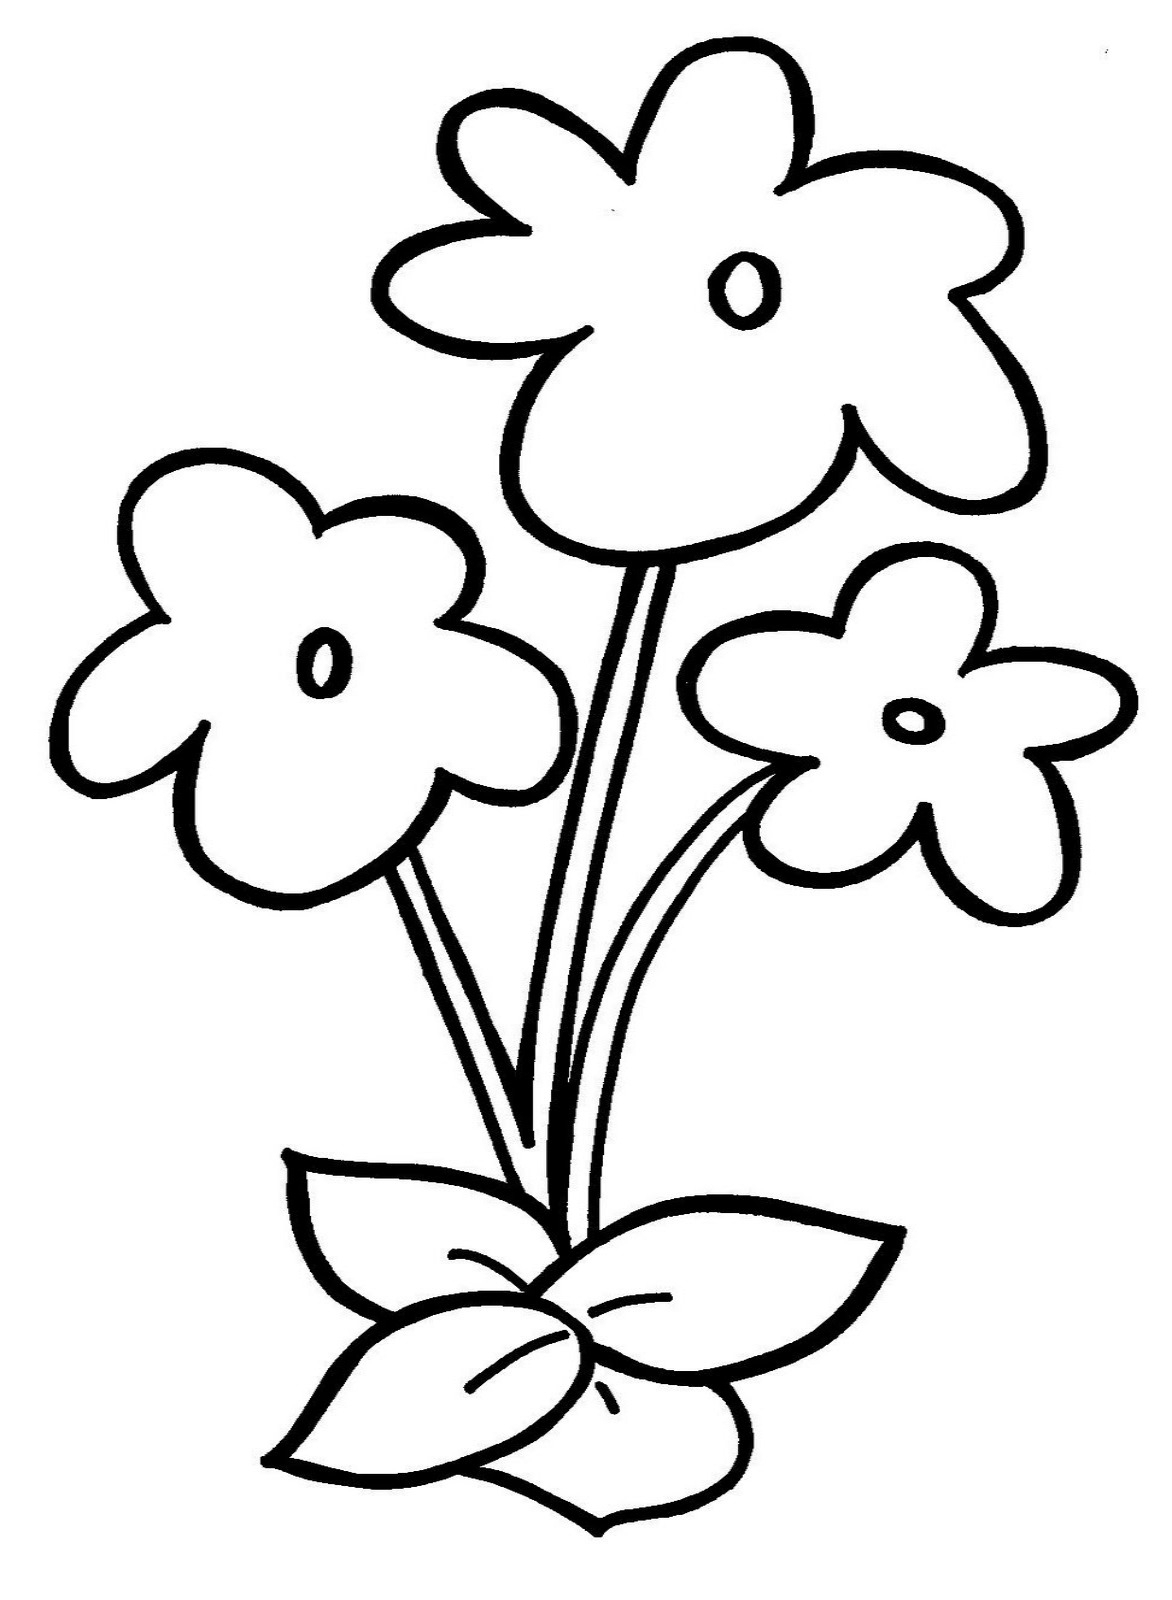 how to draw bunch of flowers step by step bunch of flowers drawing at getdrawings free download bunch of how step flowers by step to draw